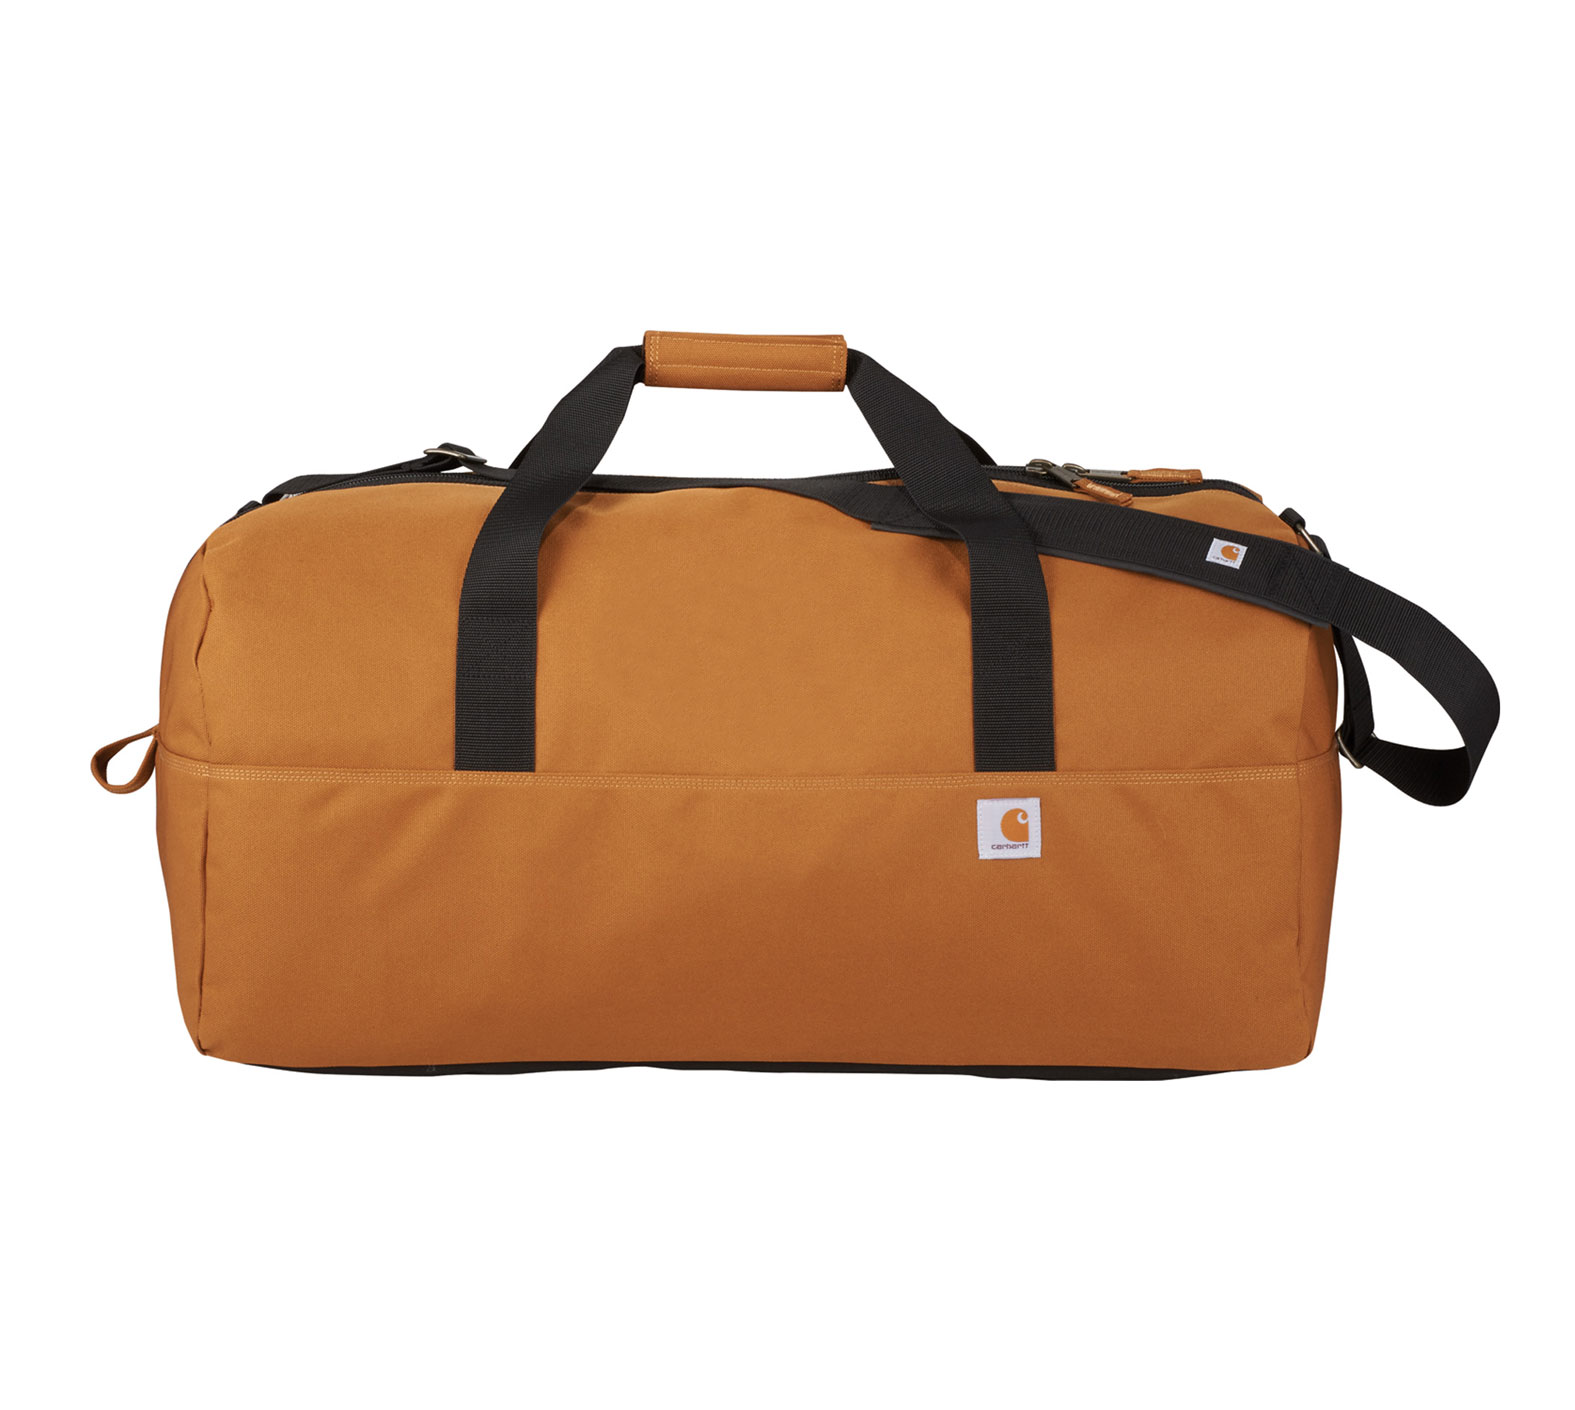 Carhartt Signature 28 Work Duffel Bag